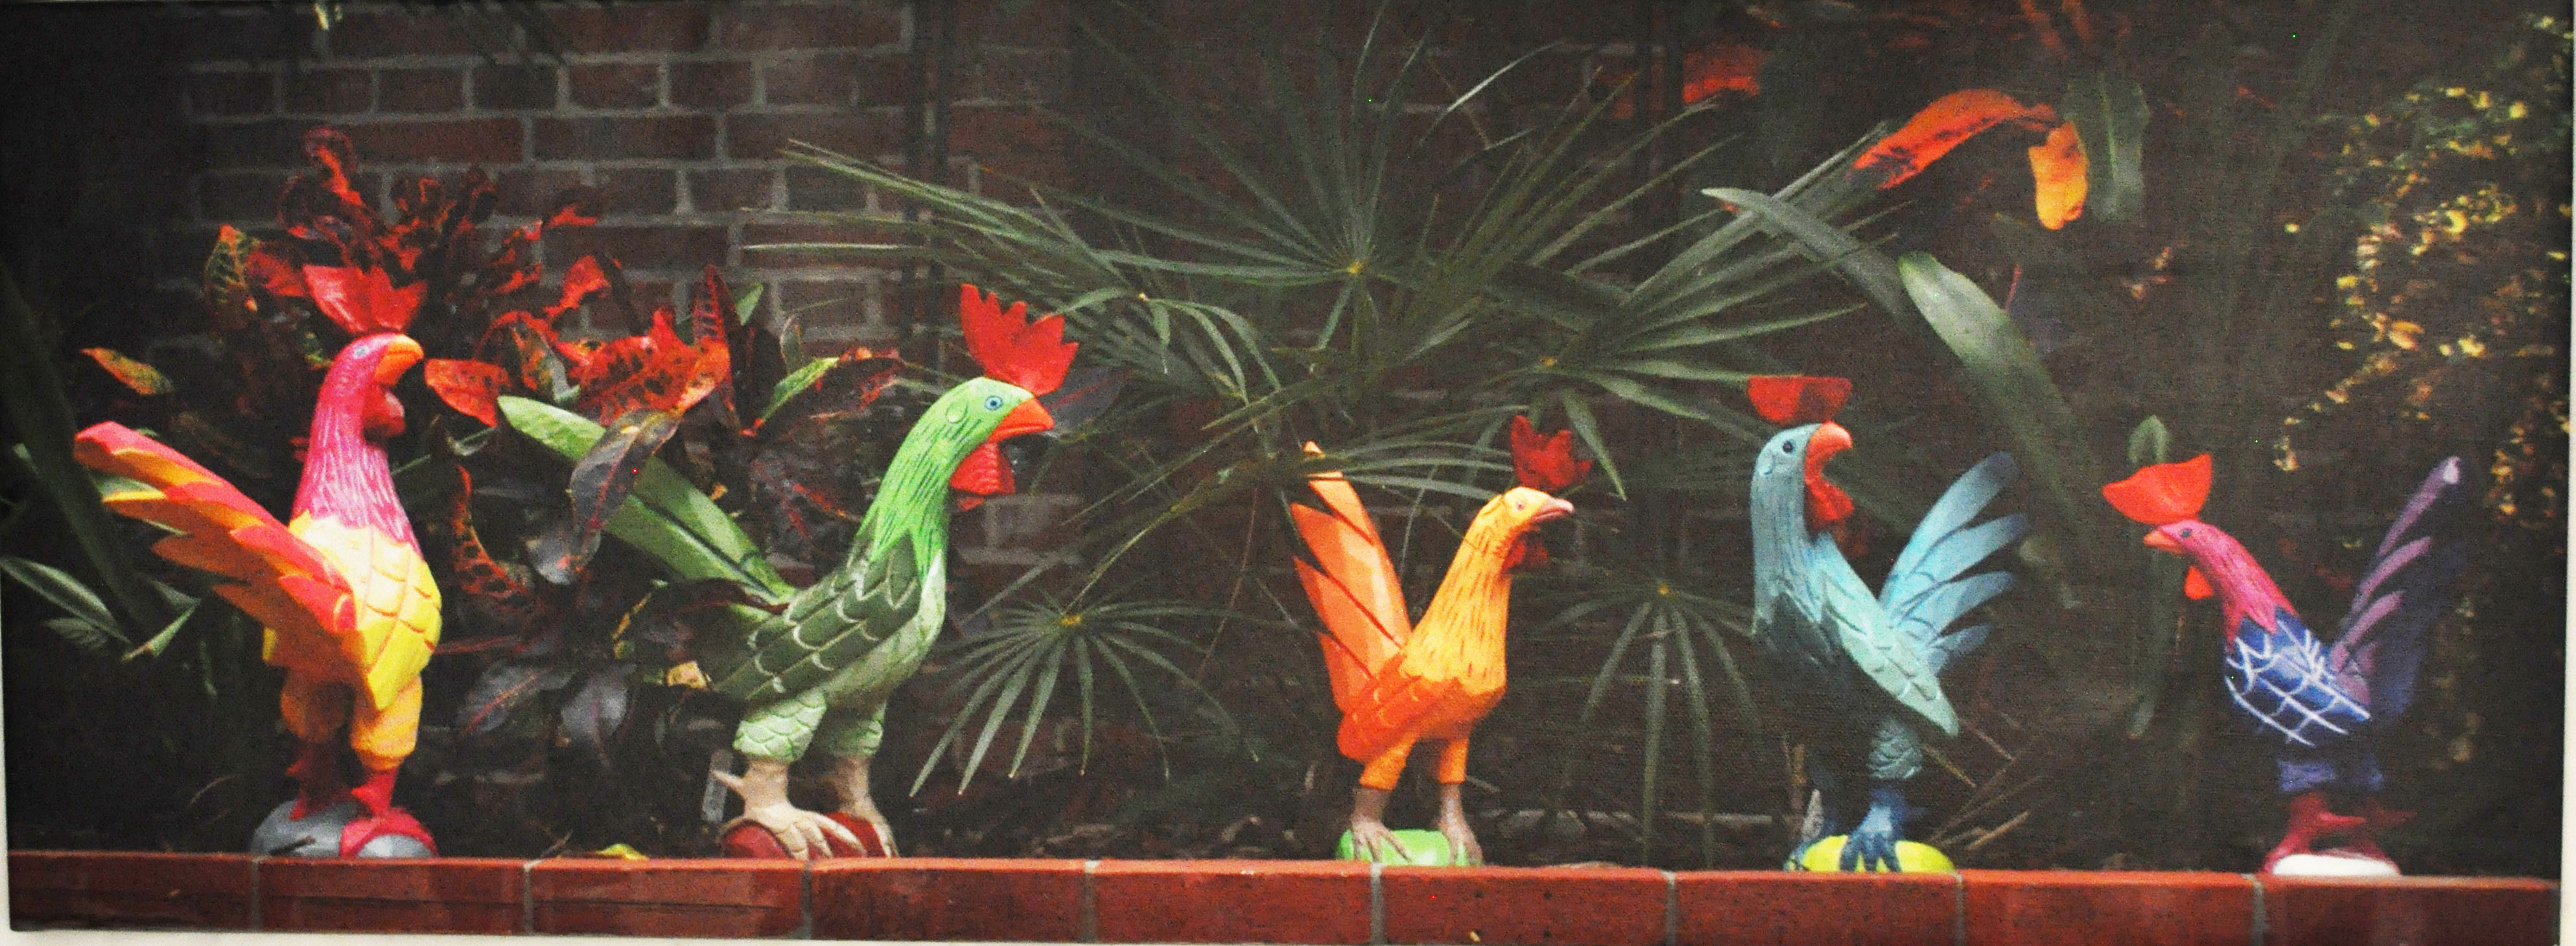 Roosters on a ledge